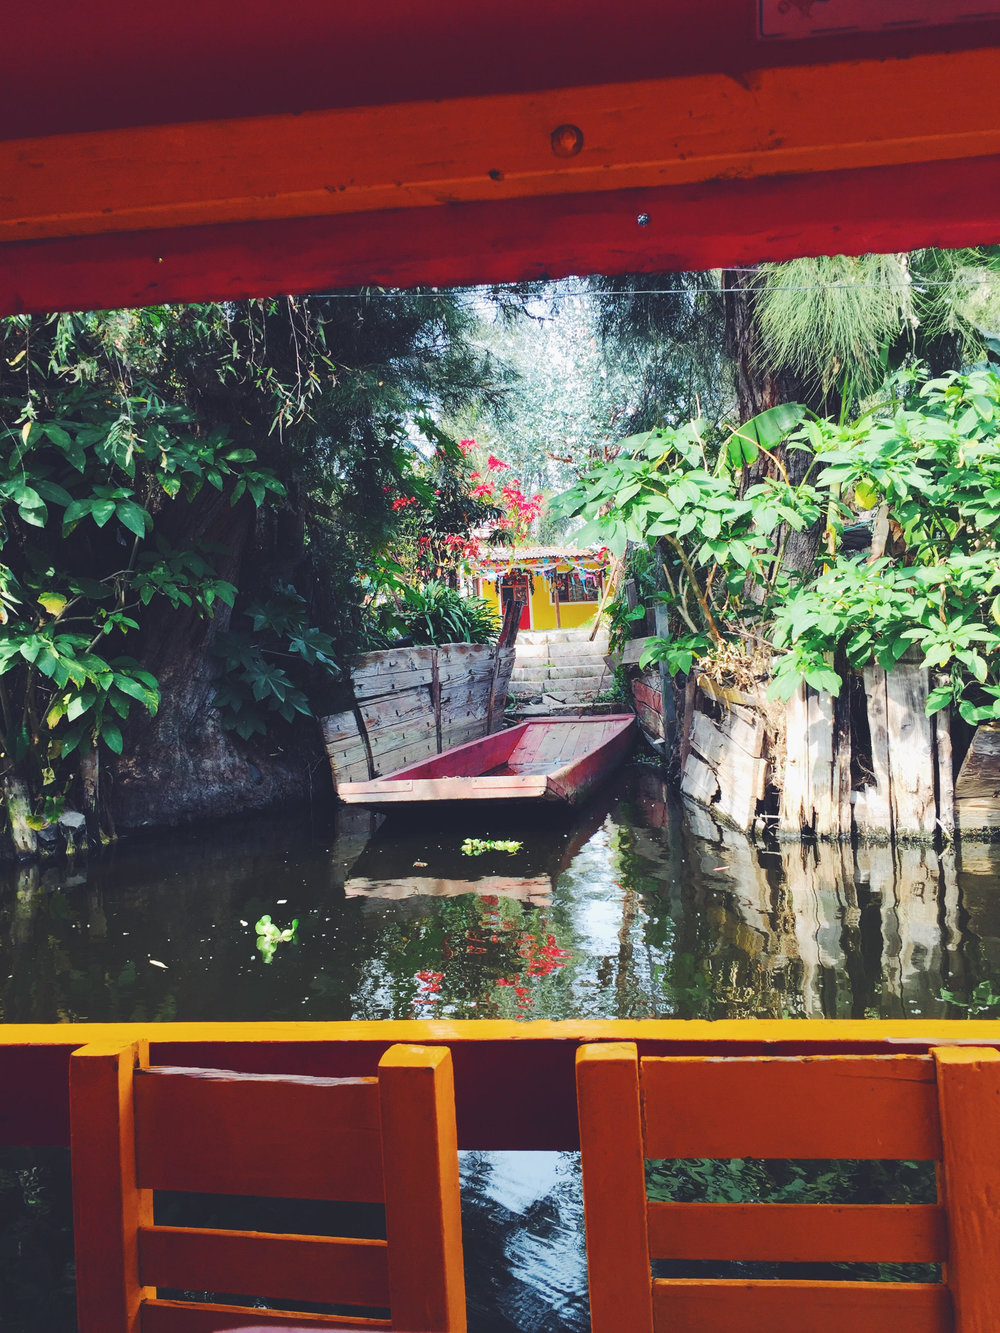 Xochimilco boating